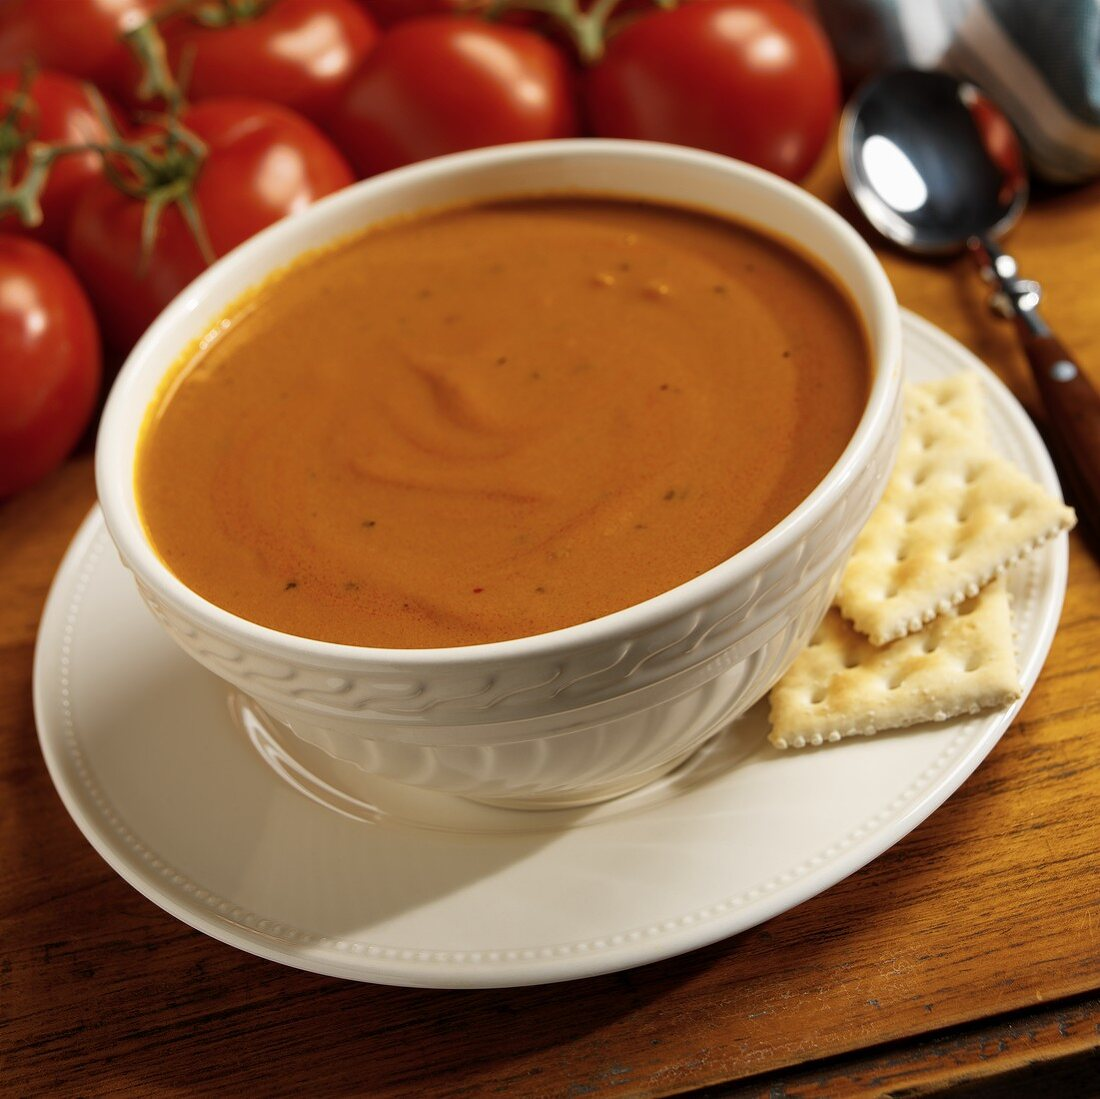 Spicy creamed tomato soup with crackers